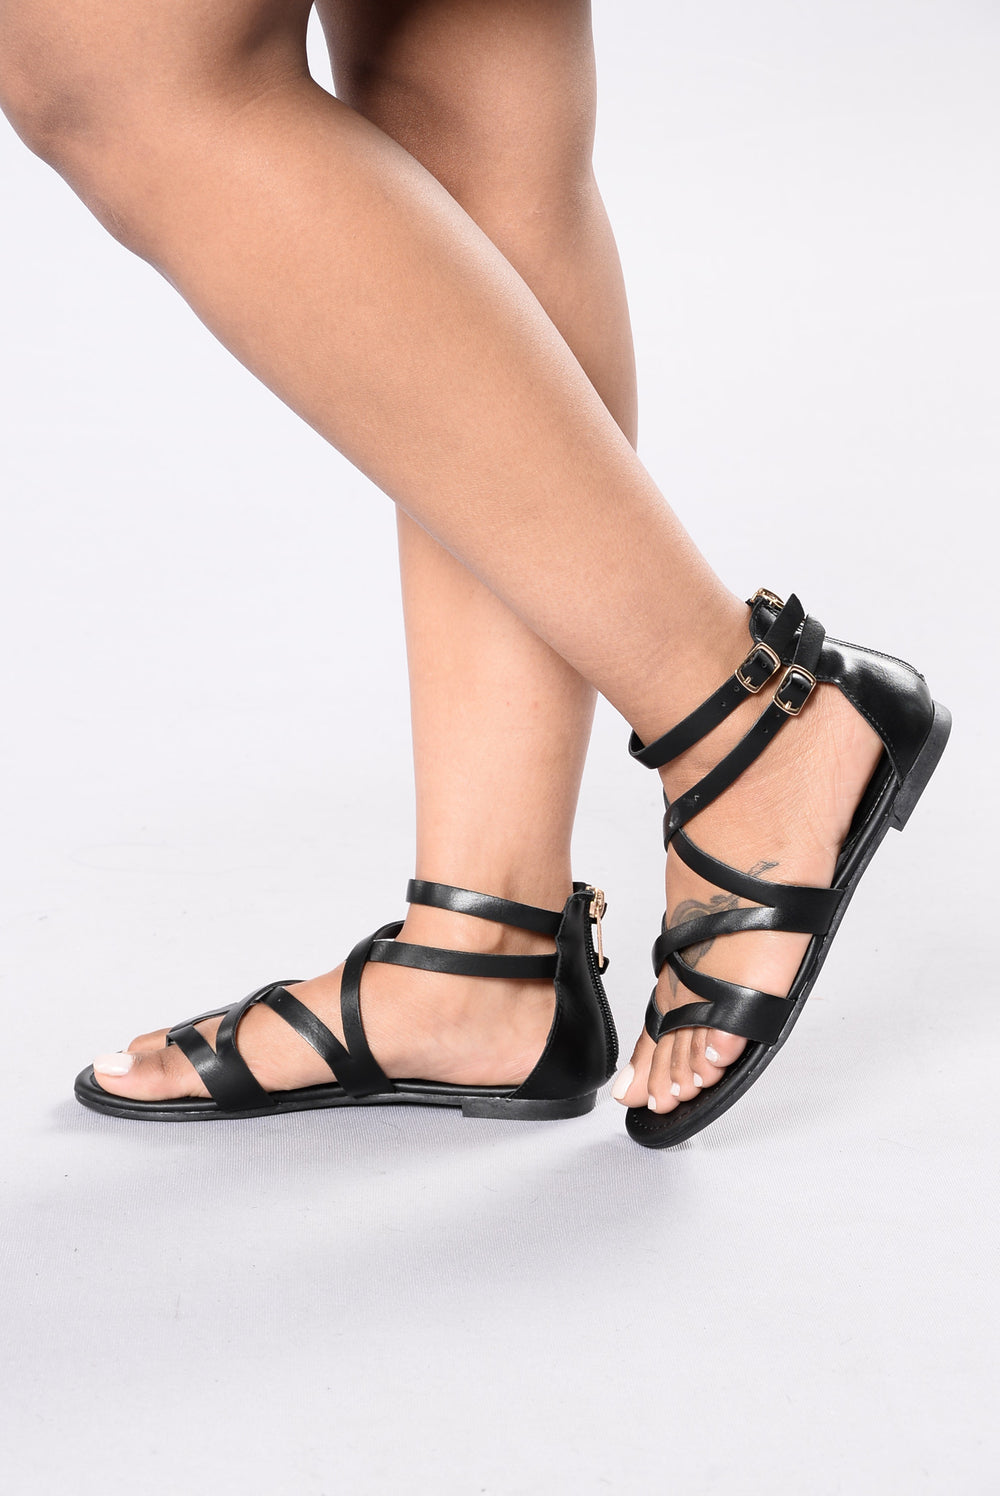 Warrior Sandal - Black